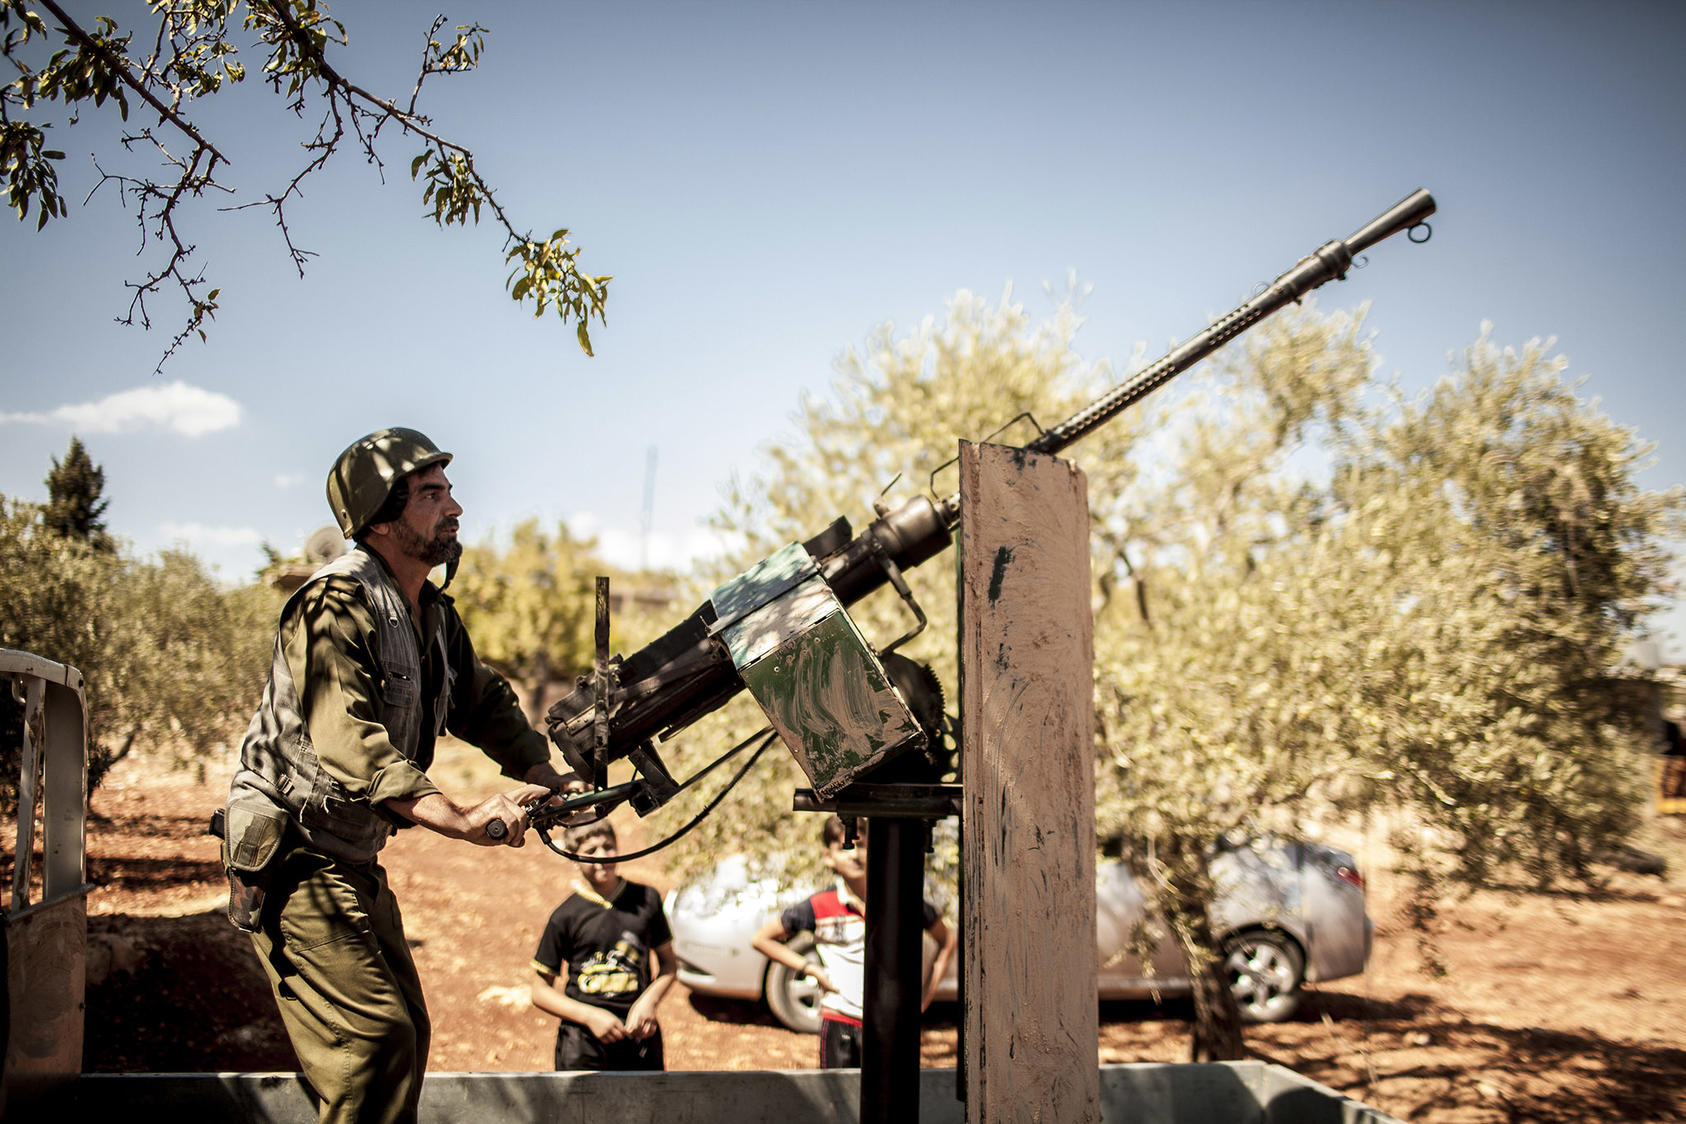 Hajj Abu Omar mounts an anti-aircraft gun in Idlib, Syria, Sept. 21, 2012. (Bryan Denton/The New York Times)